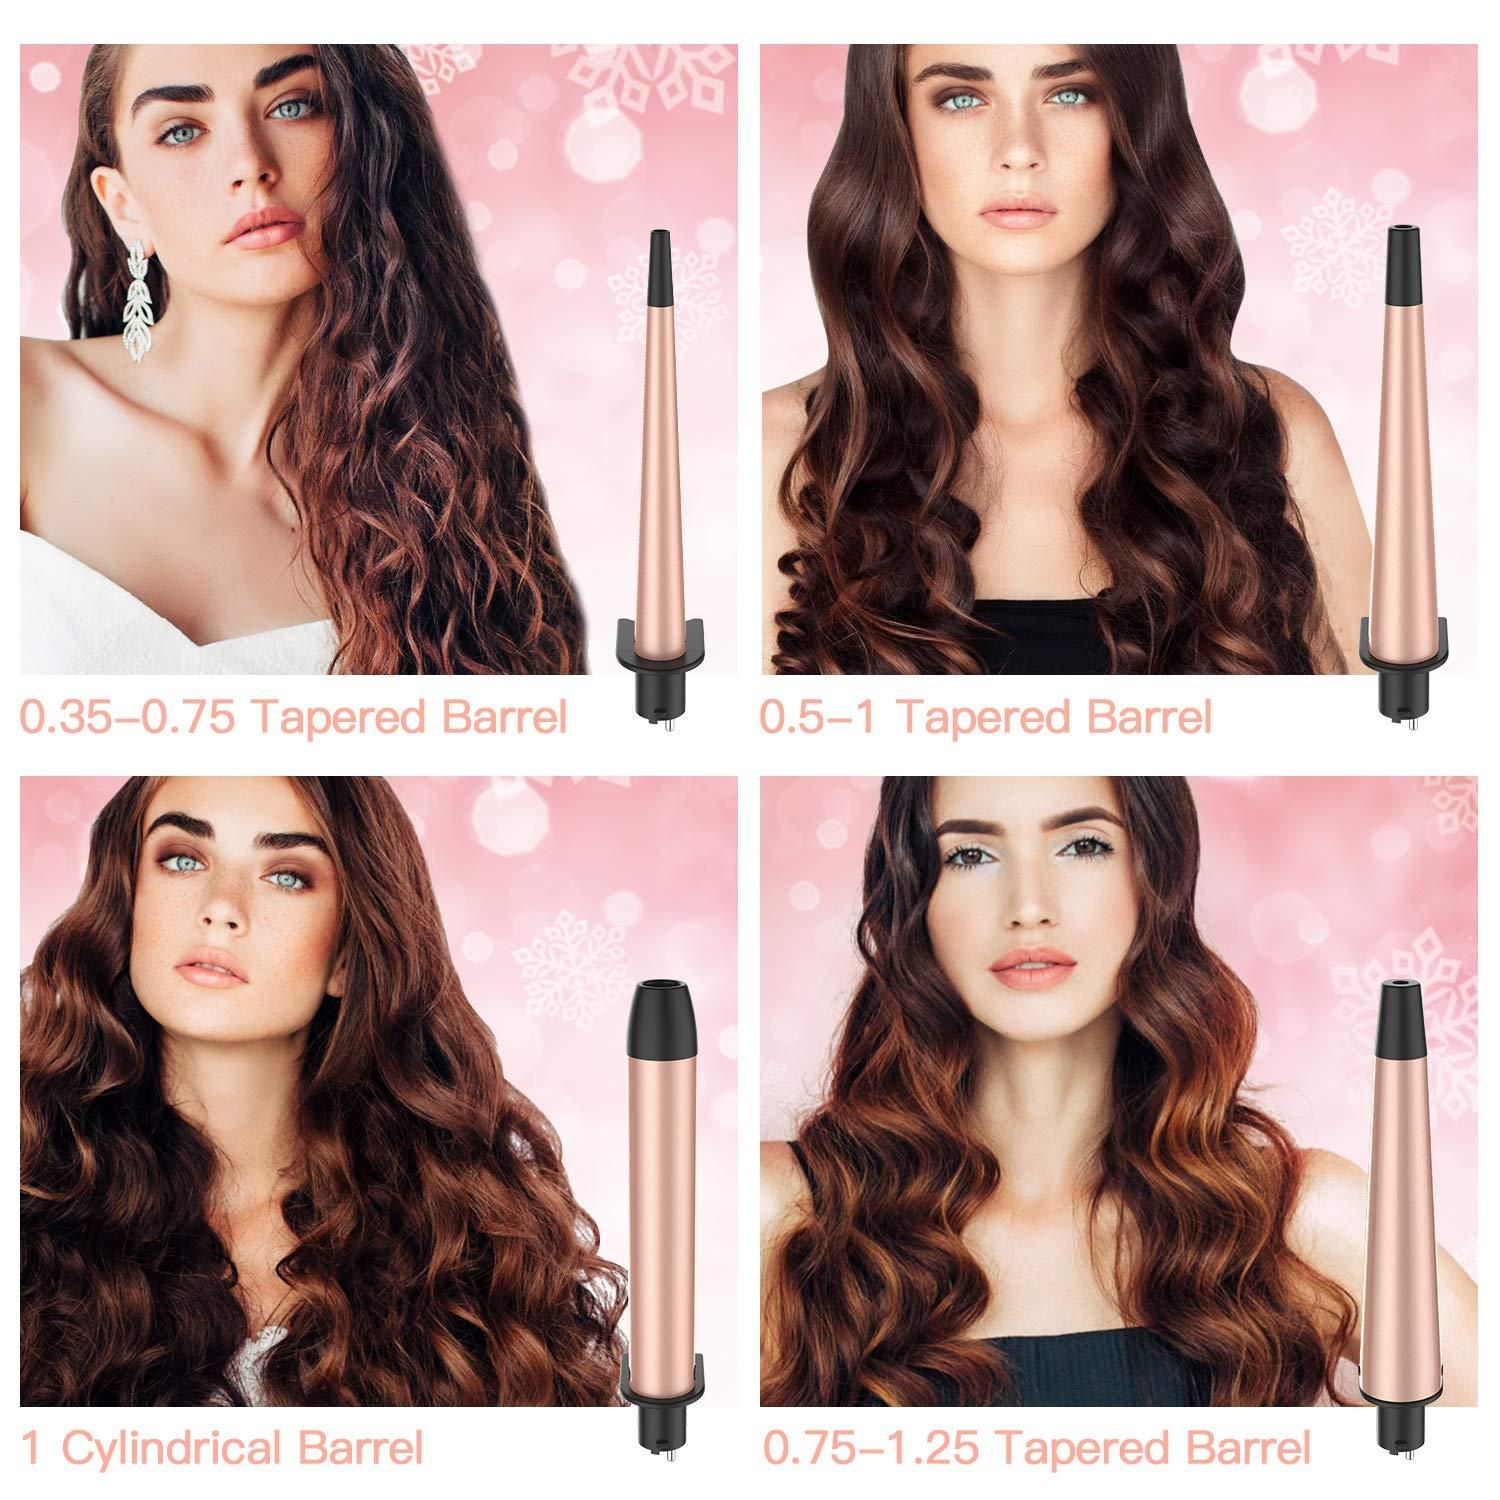 Happylocks Curling Hair With Wand Wand Hairstyles Long Lasting Curls